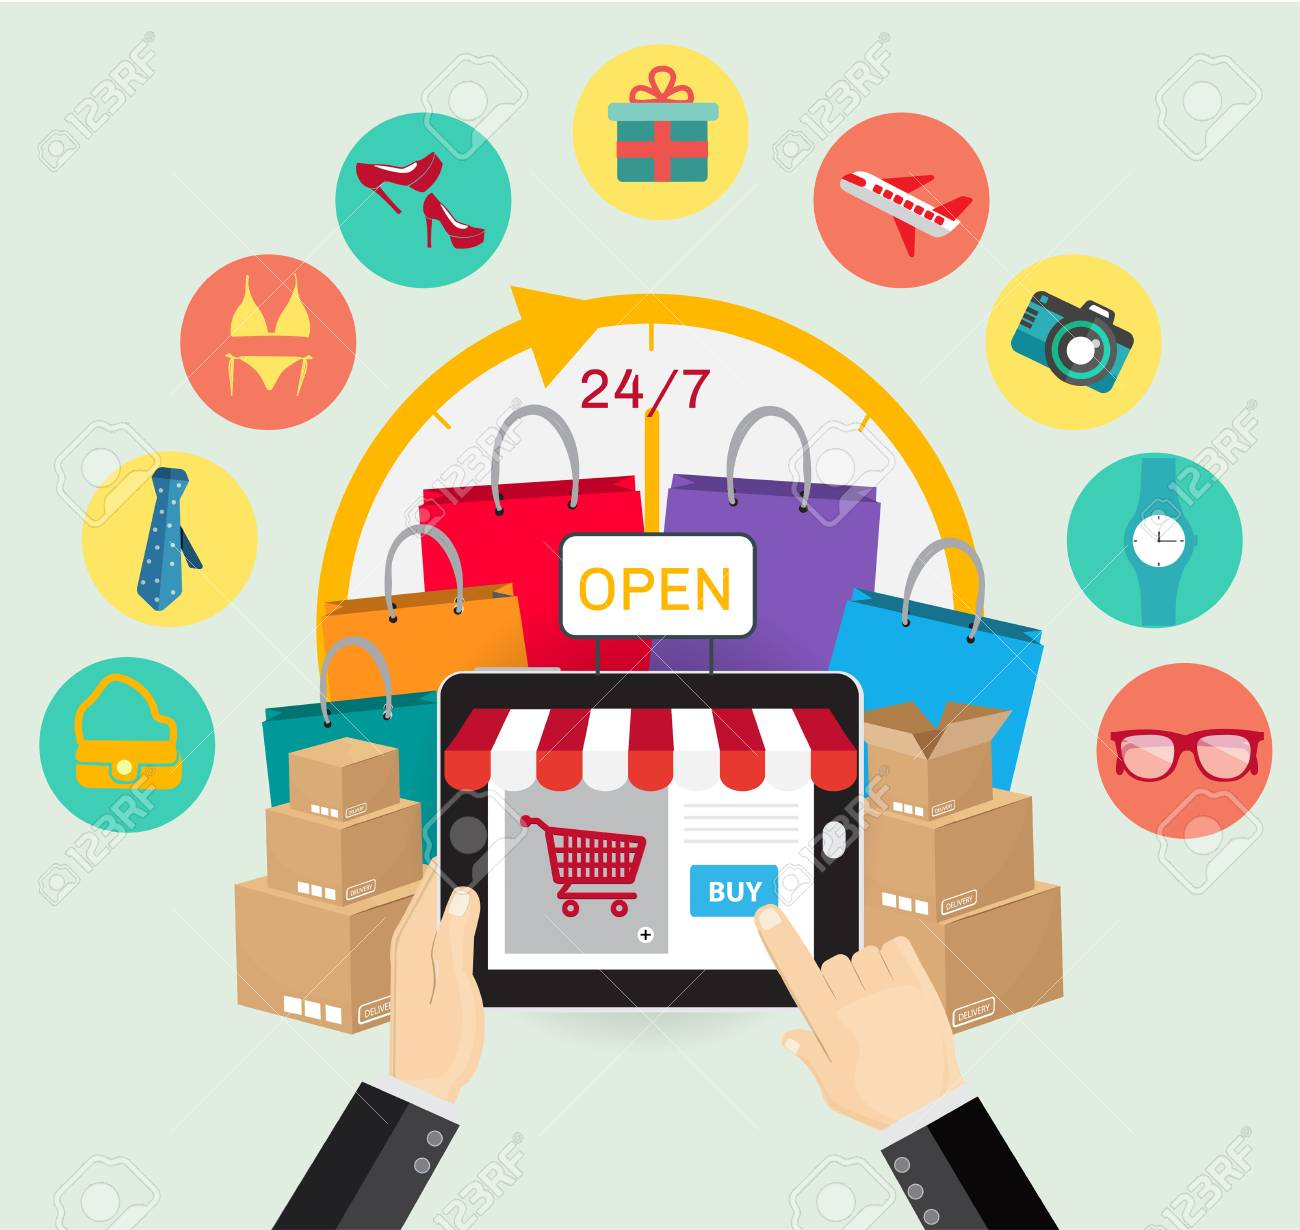 28696b95c53 Online shopping e-commerce concept. business button order item store online  on smartphone and